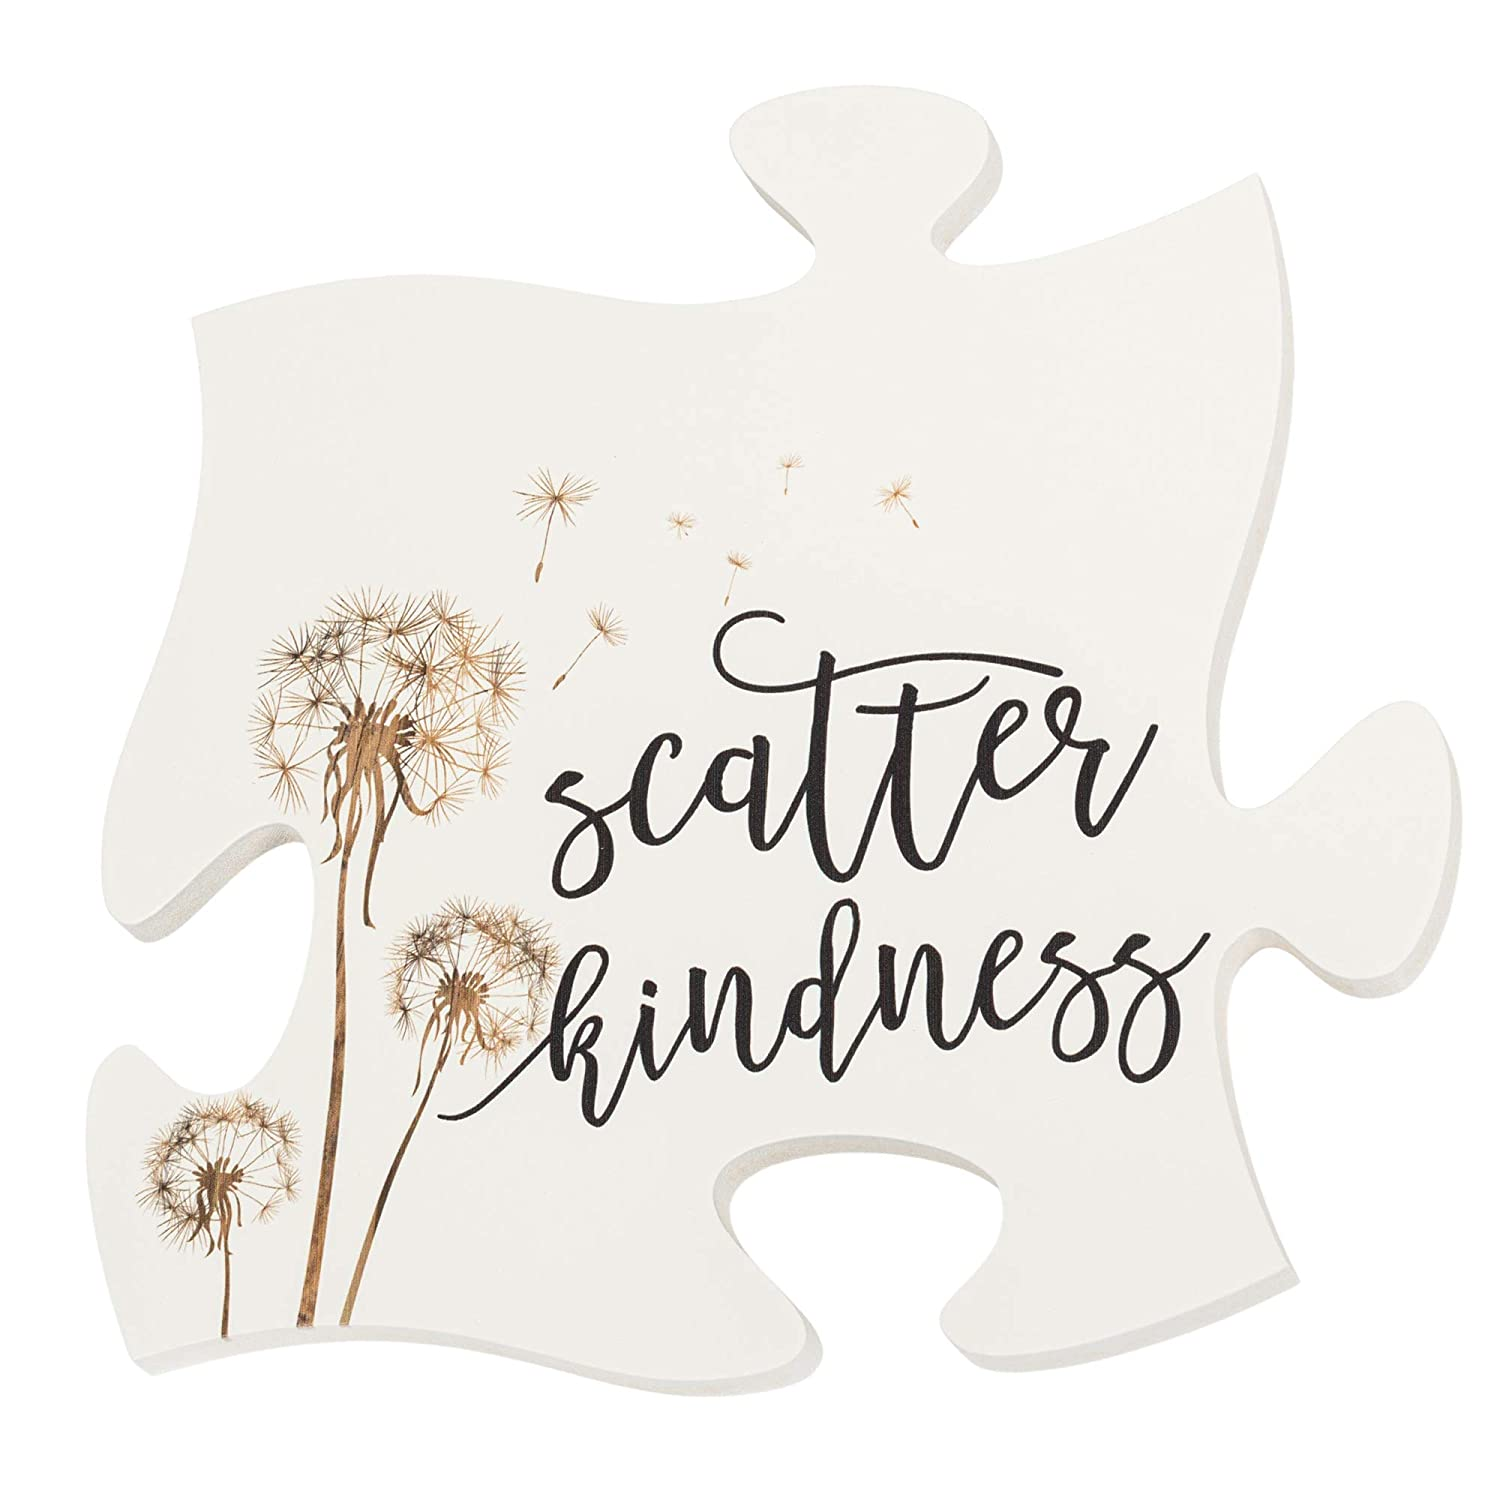 P. Graham Dunn Scatter Kindness Dandelion White 12 x 12 Wood Puzzle Piece Wall Sign Plaque